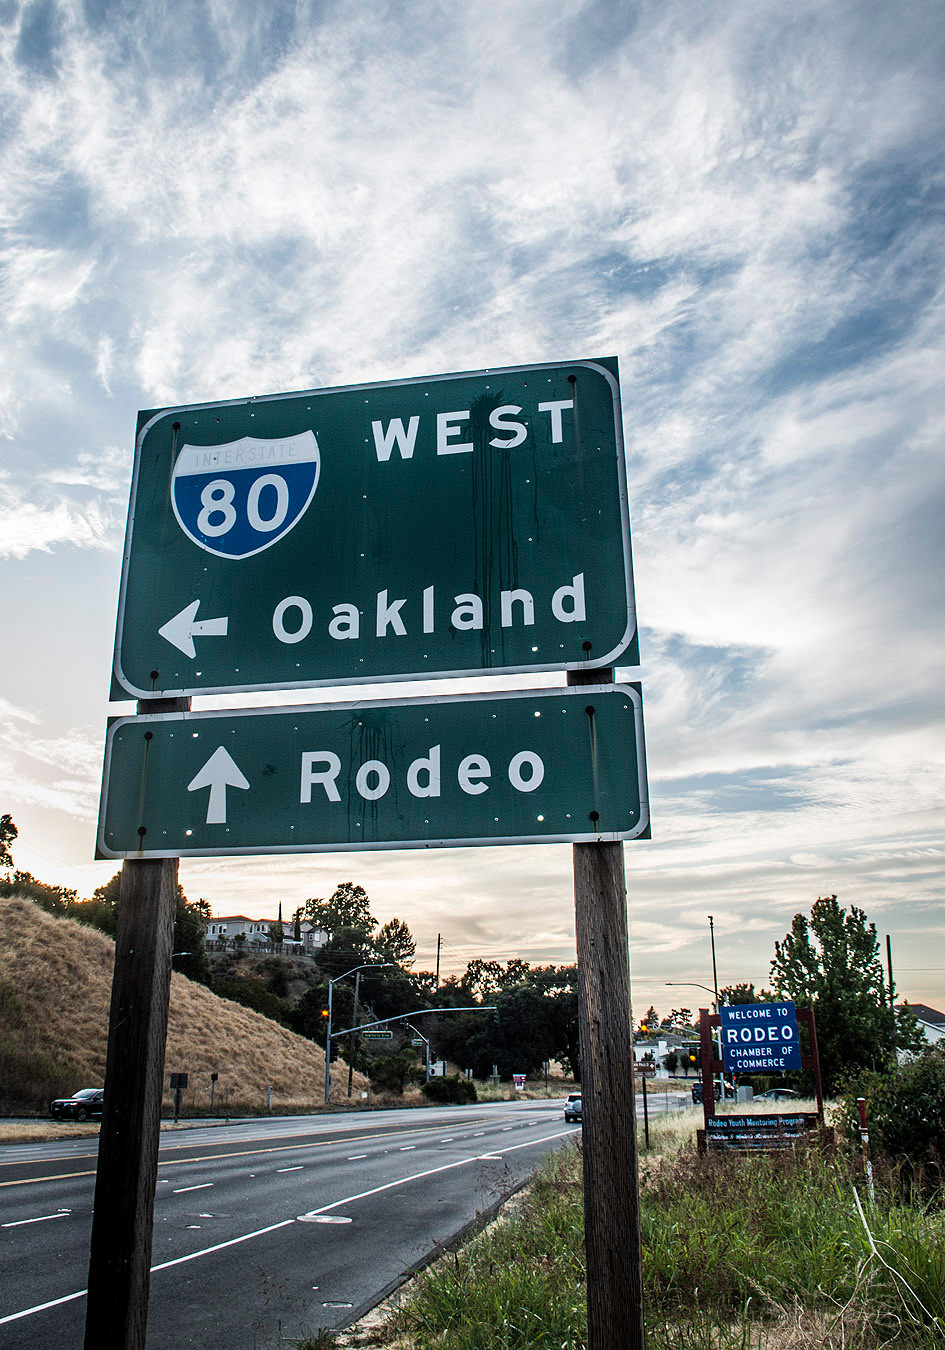 Rodeo Oakland 80 sign